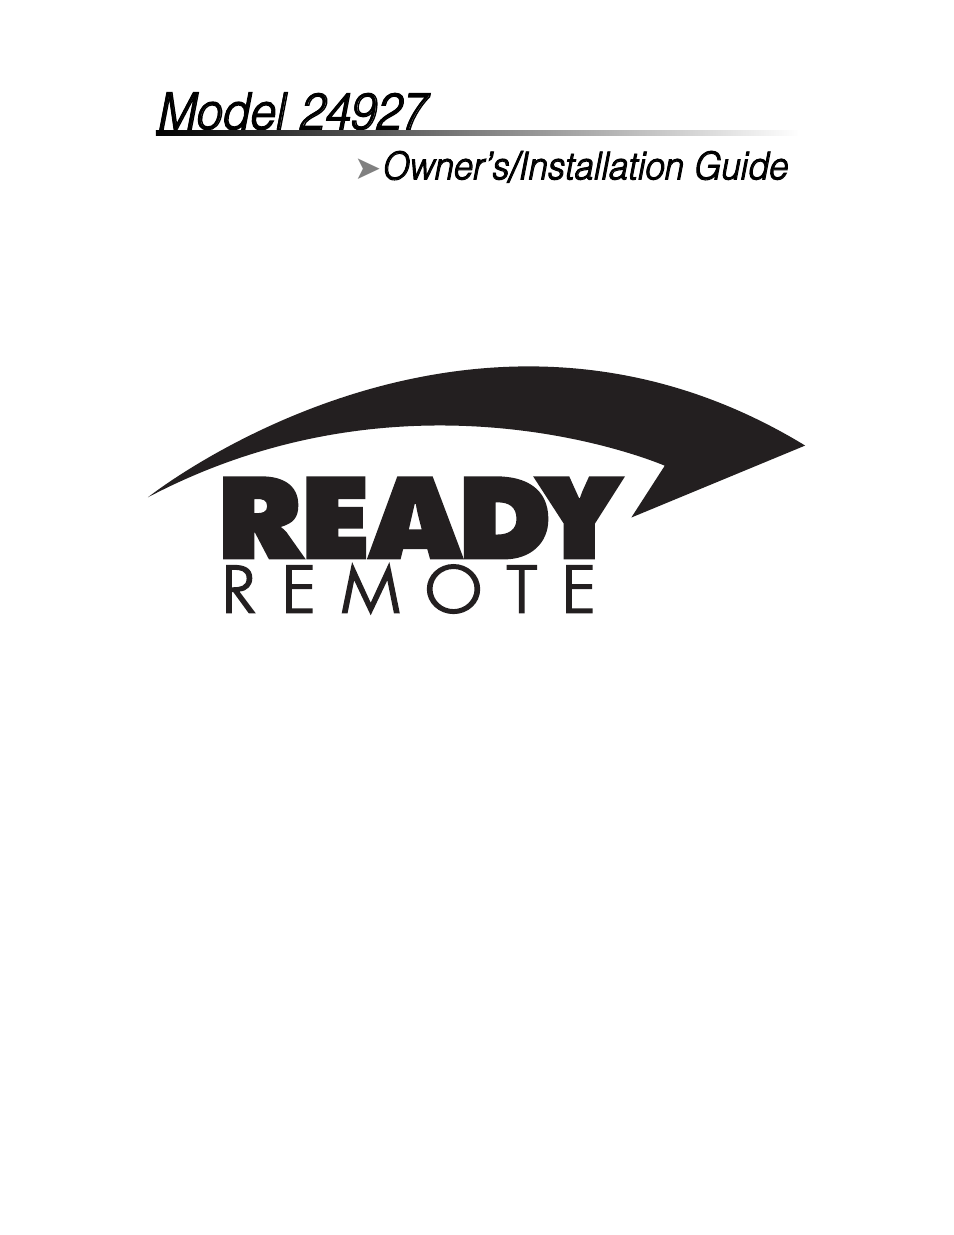 ready remote 24927 user manual 79 pages rh manualsdir com Owner's Manual User Manual PDF